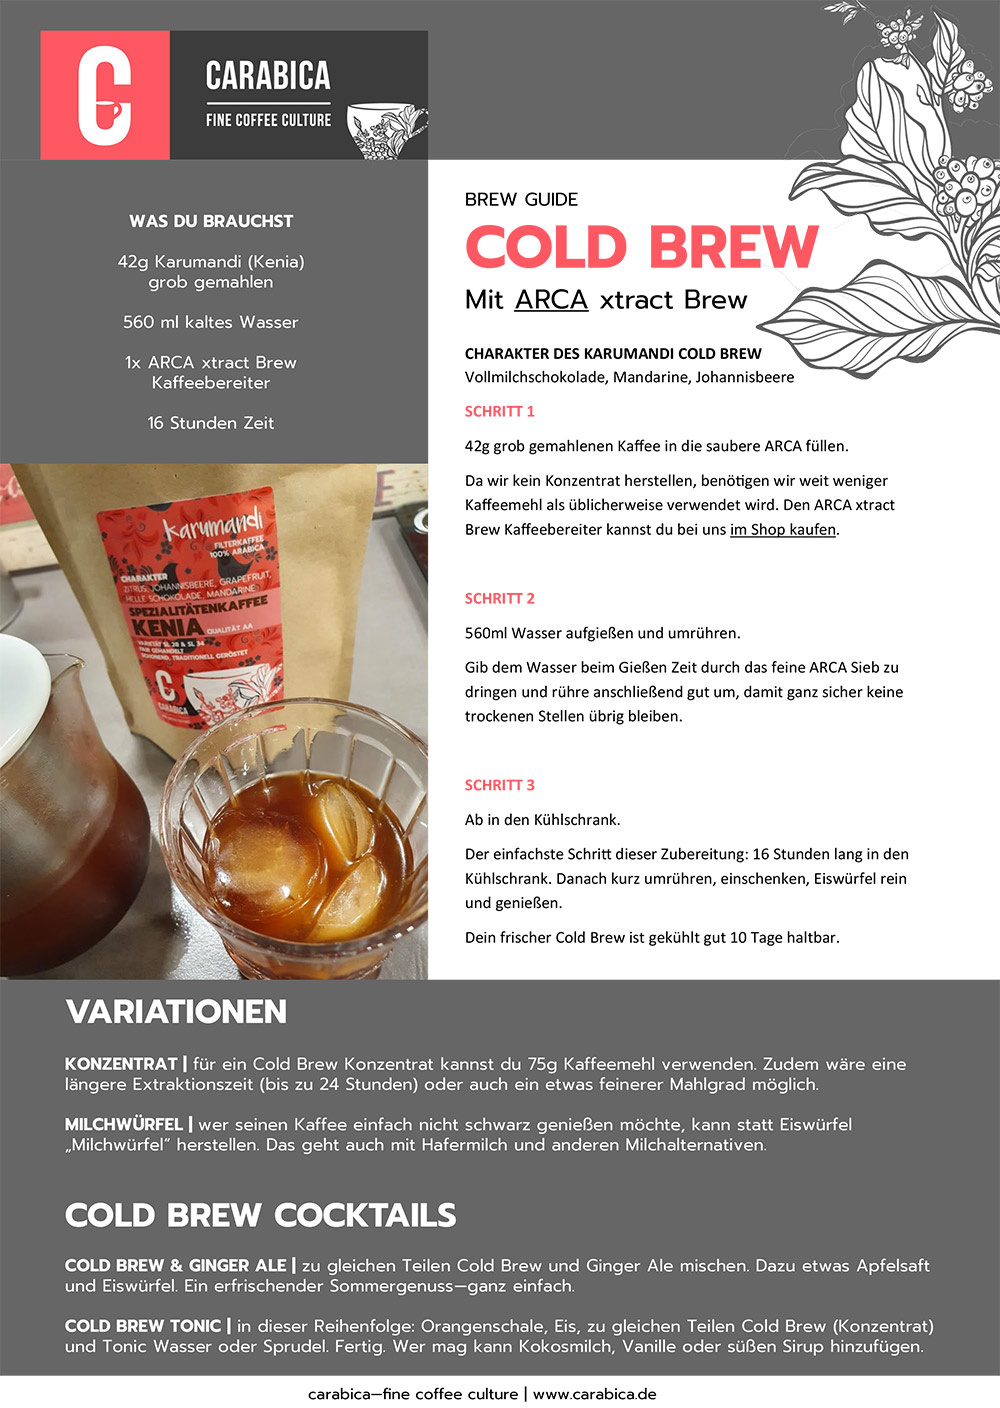 Cold Brew Guide mit ARCA Carl Henkel Brewers